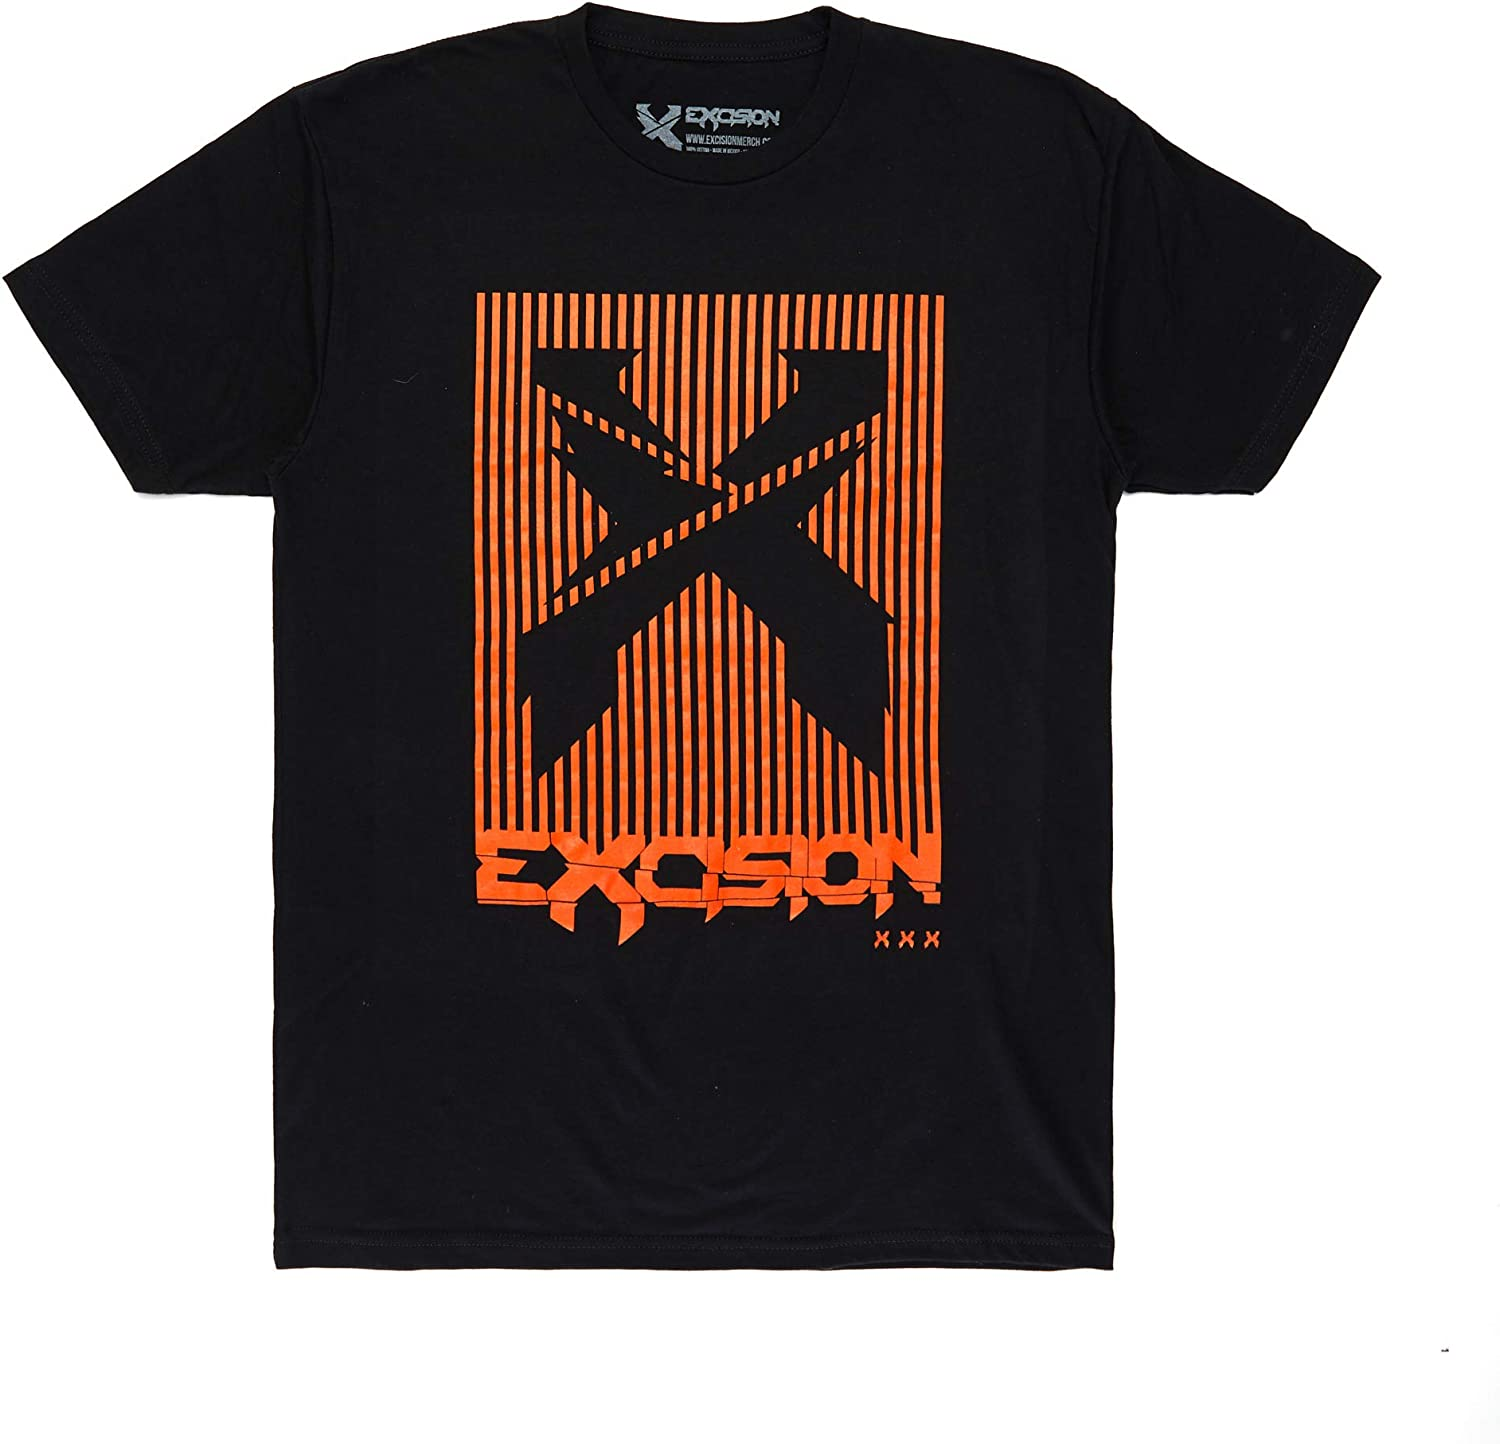 Excision X T-Shirt